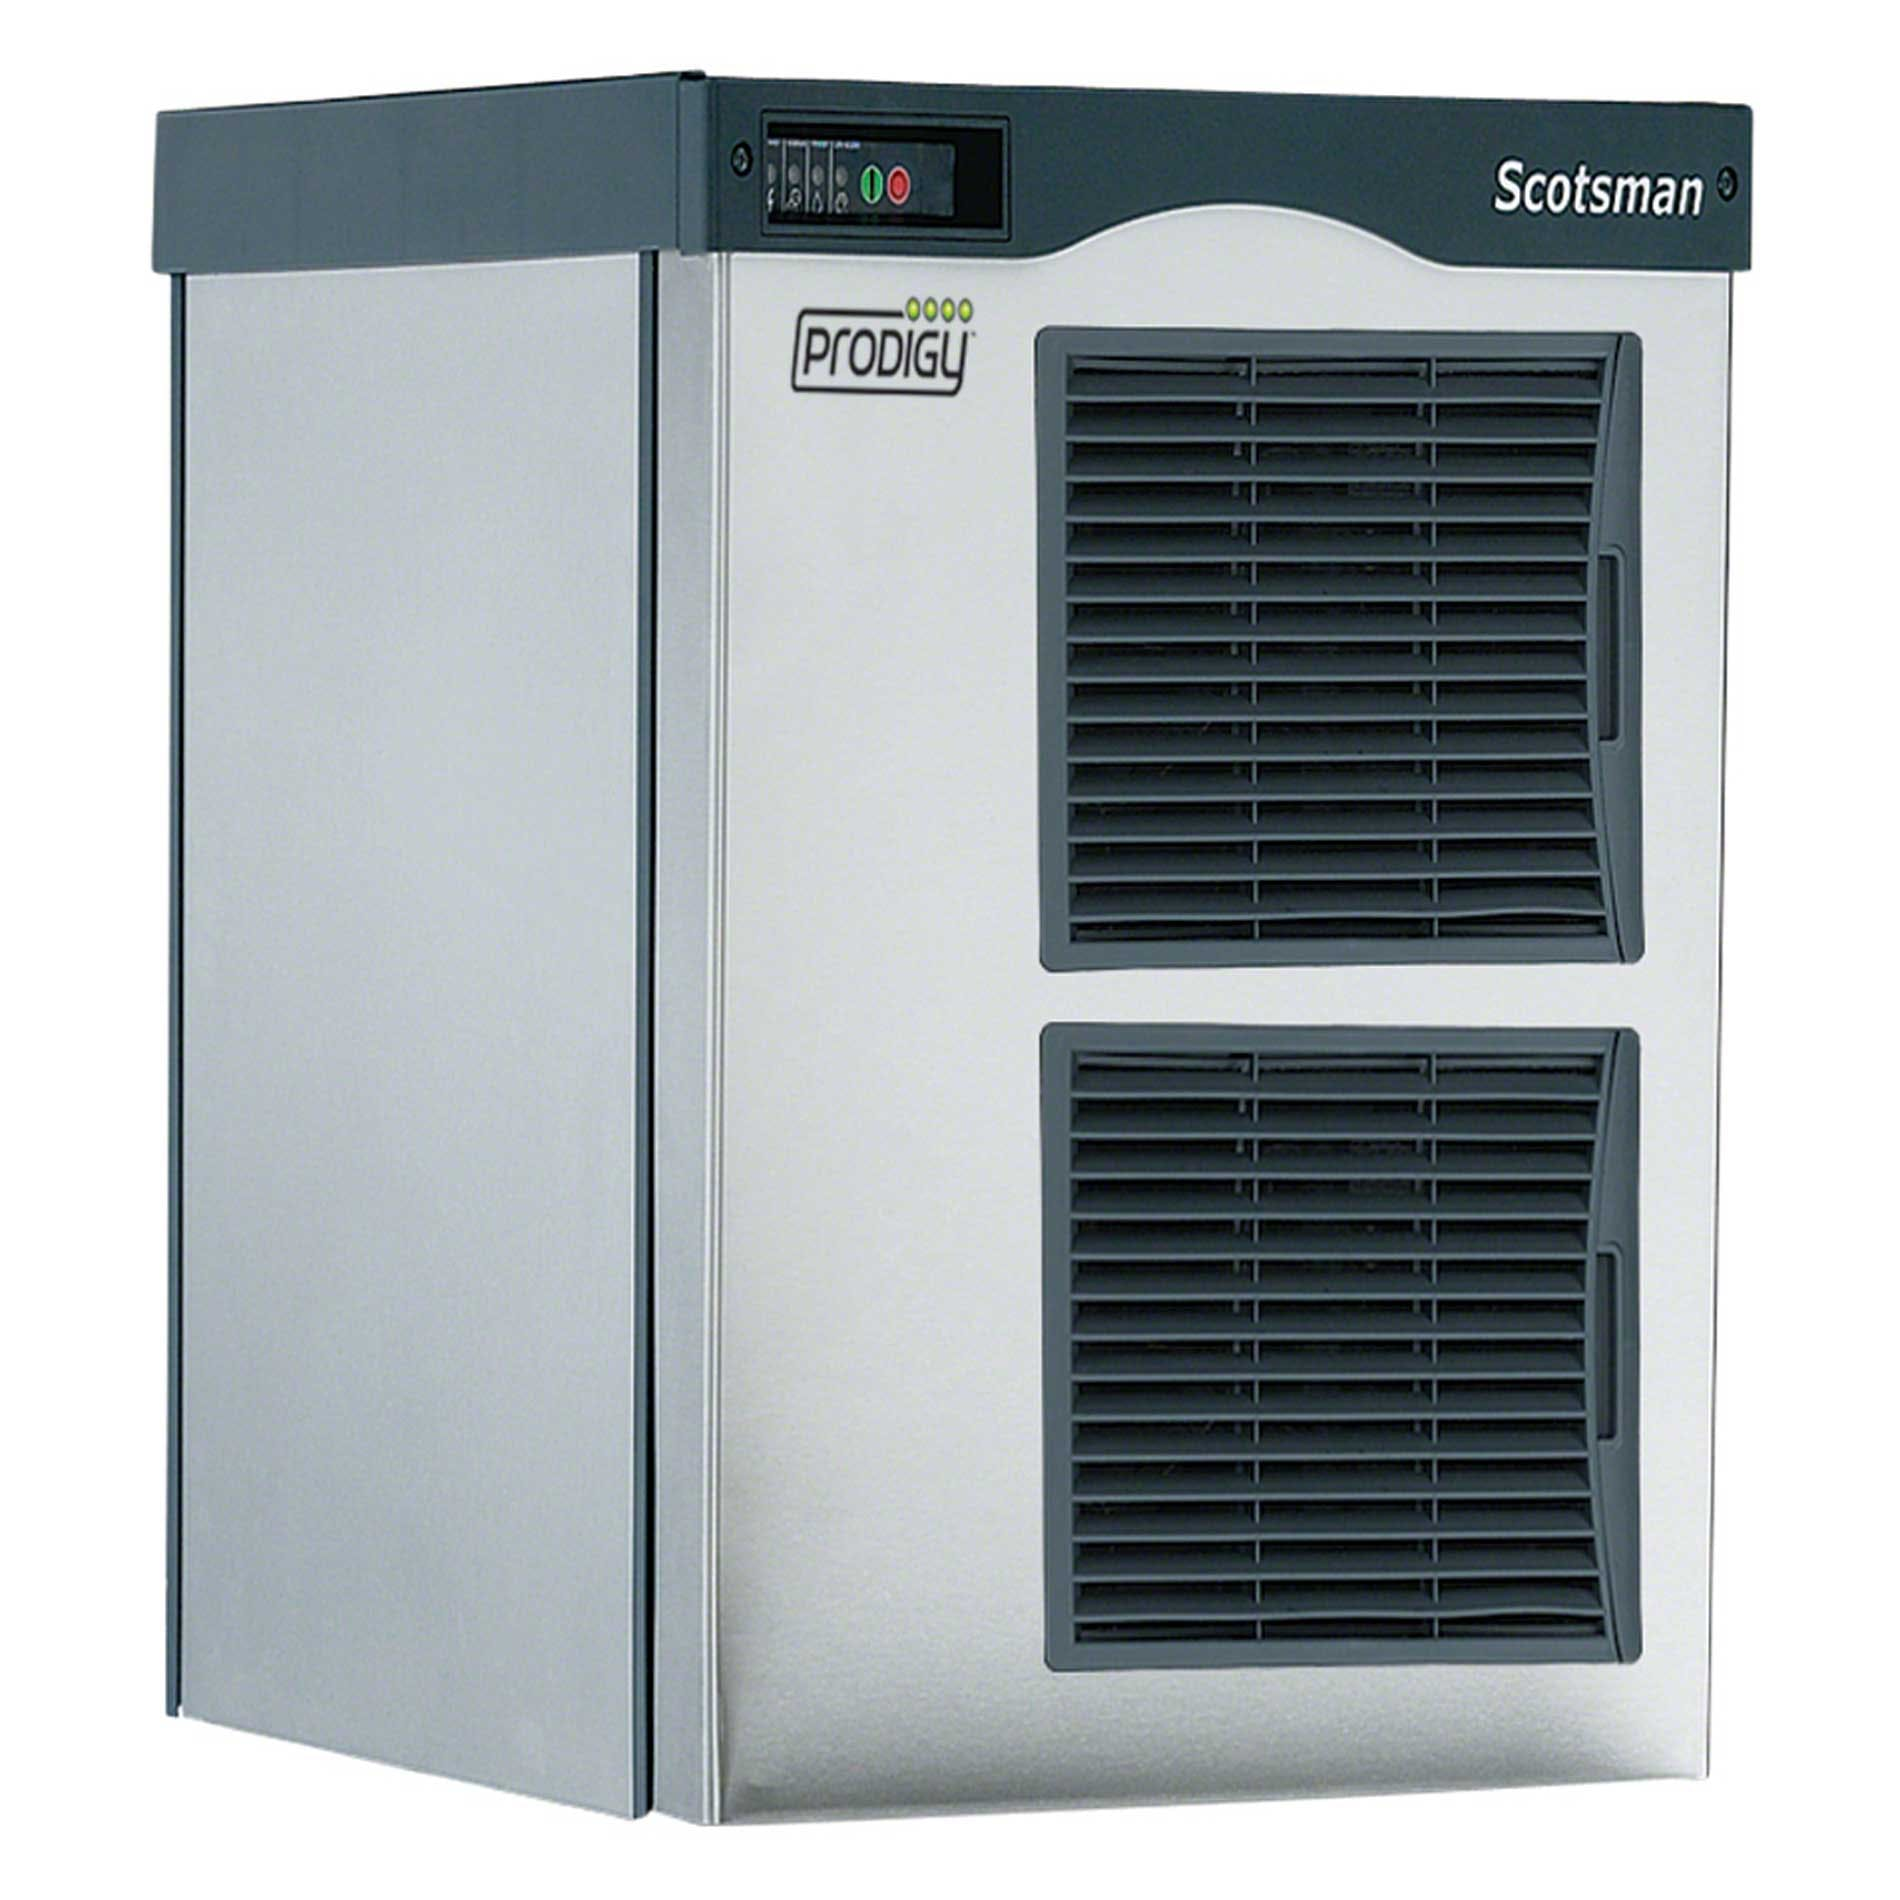 Scotsman - F1222W-32 1200 lb Modular Flake Ice Machine - Prodigy® Series Ice machine sold by Food Service Warehouse